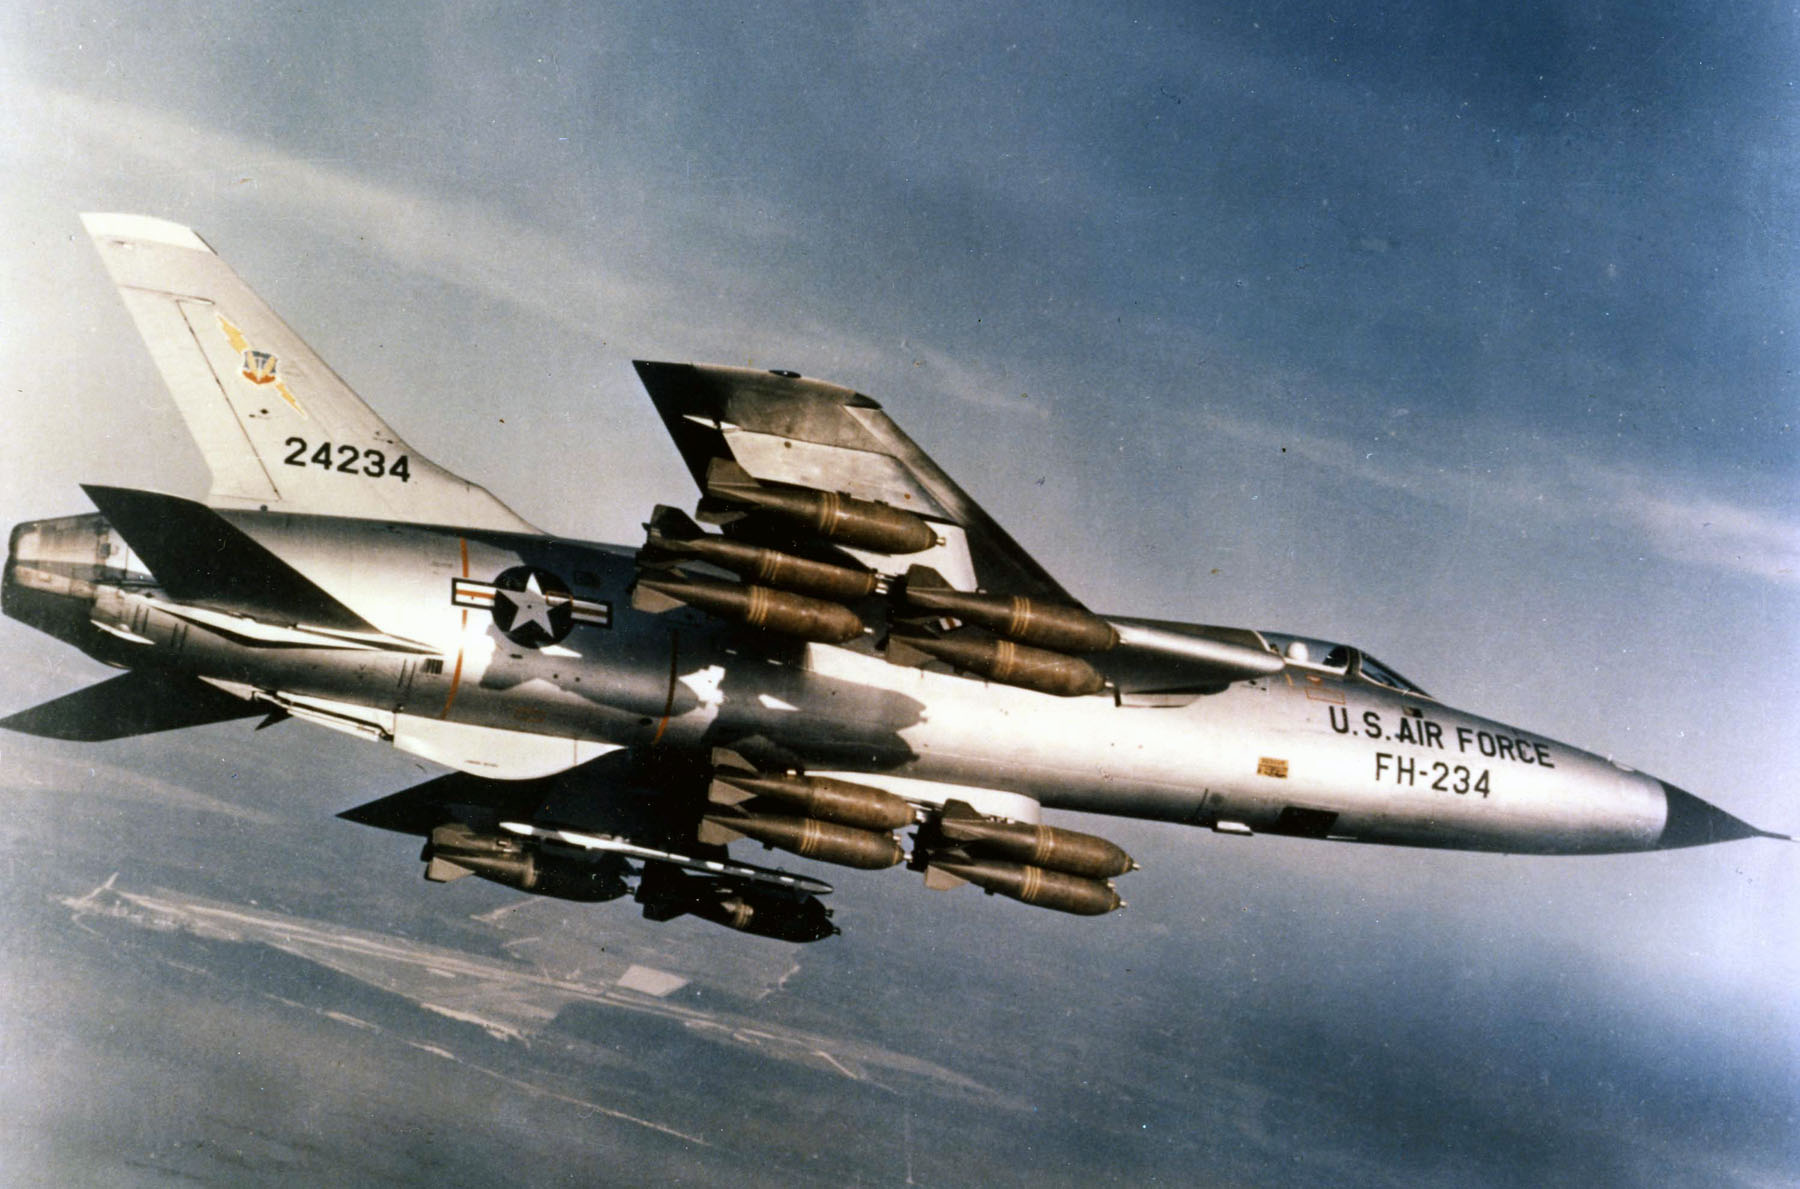 Republic F-105D-30-RE Thunderchief (SN 62-4234) in flight with a full bomb load of M117 750 lb bombs. (Image by USAF - U.S. Air Force Museum website via Wikipedia)